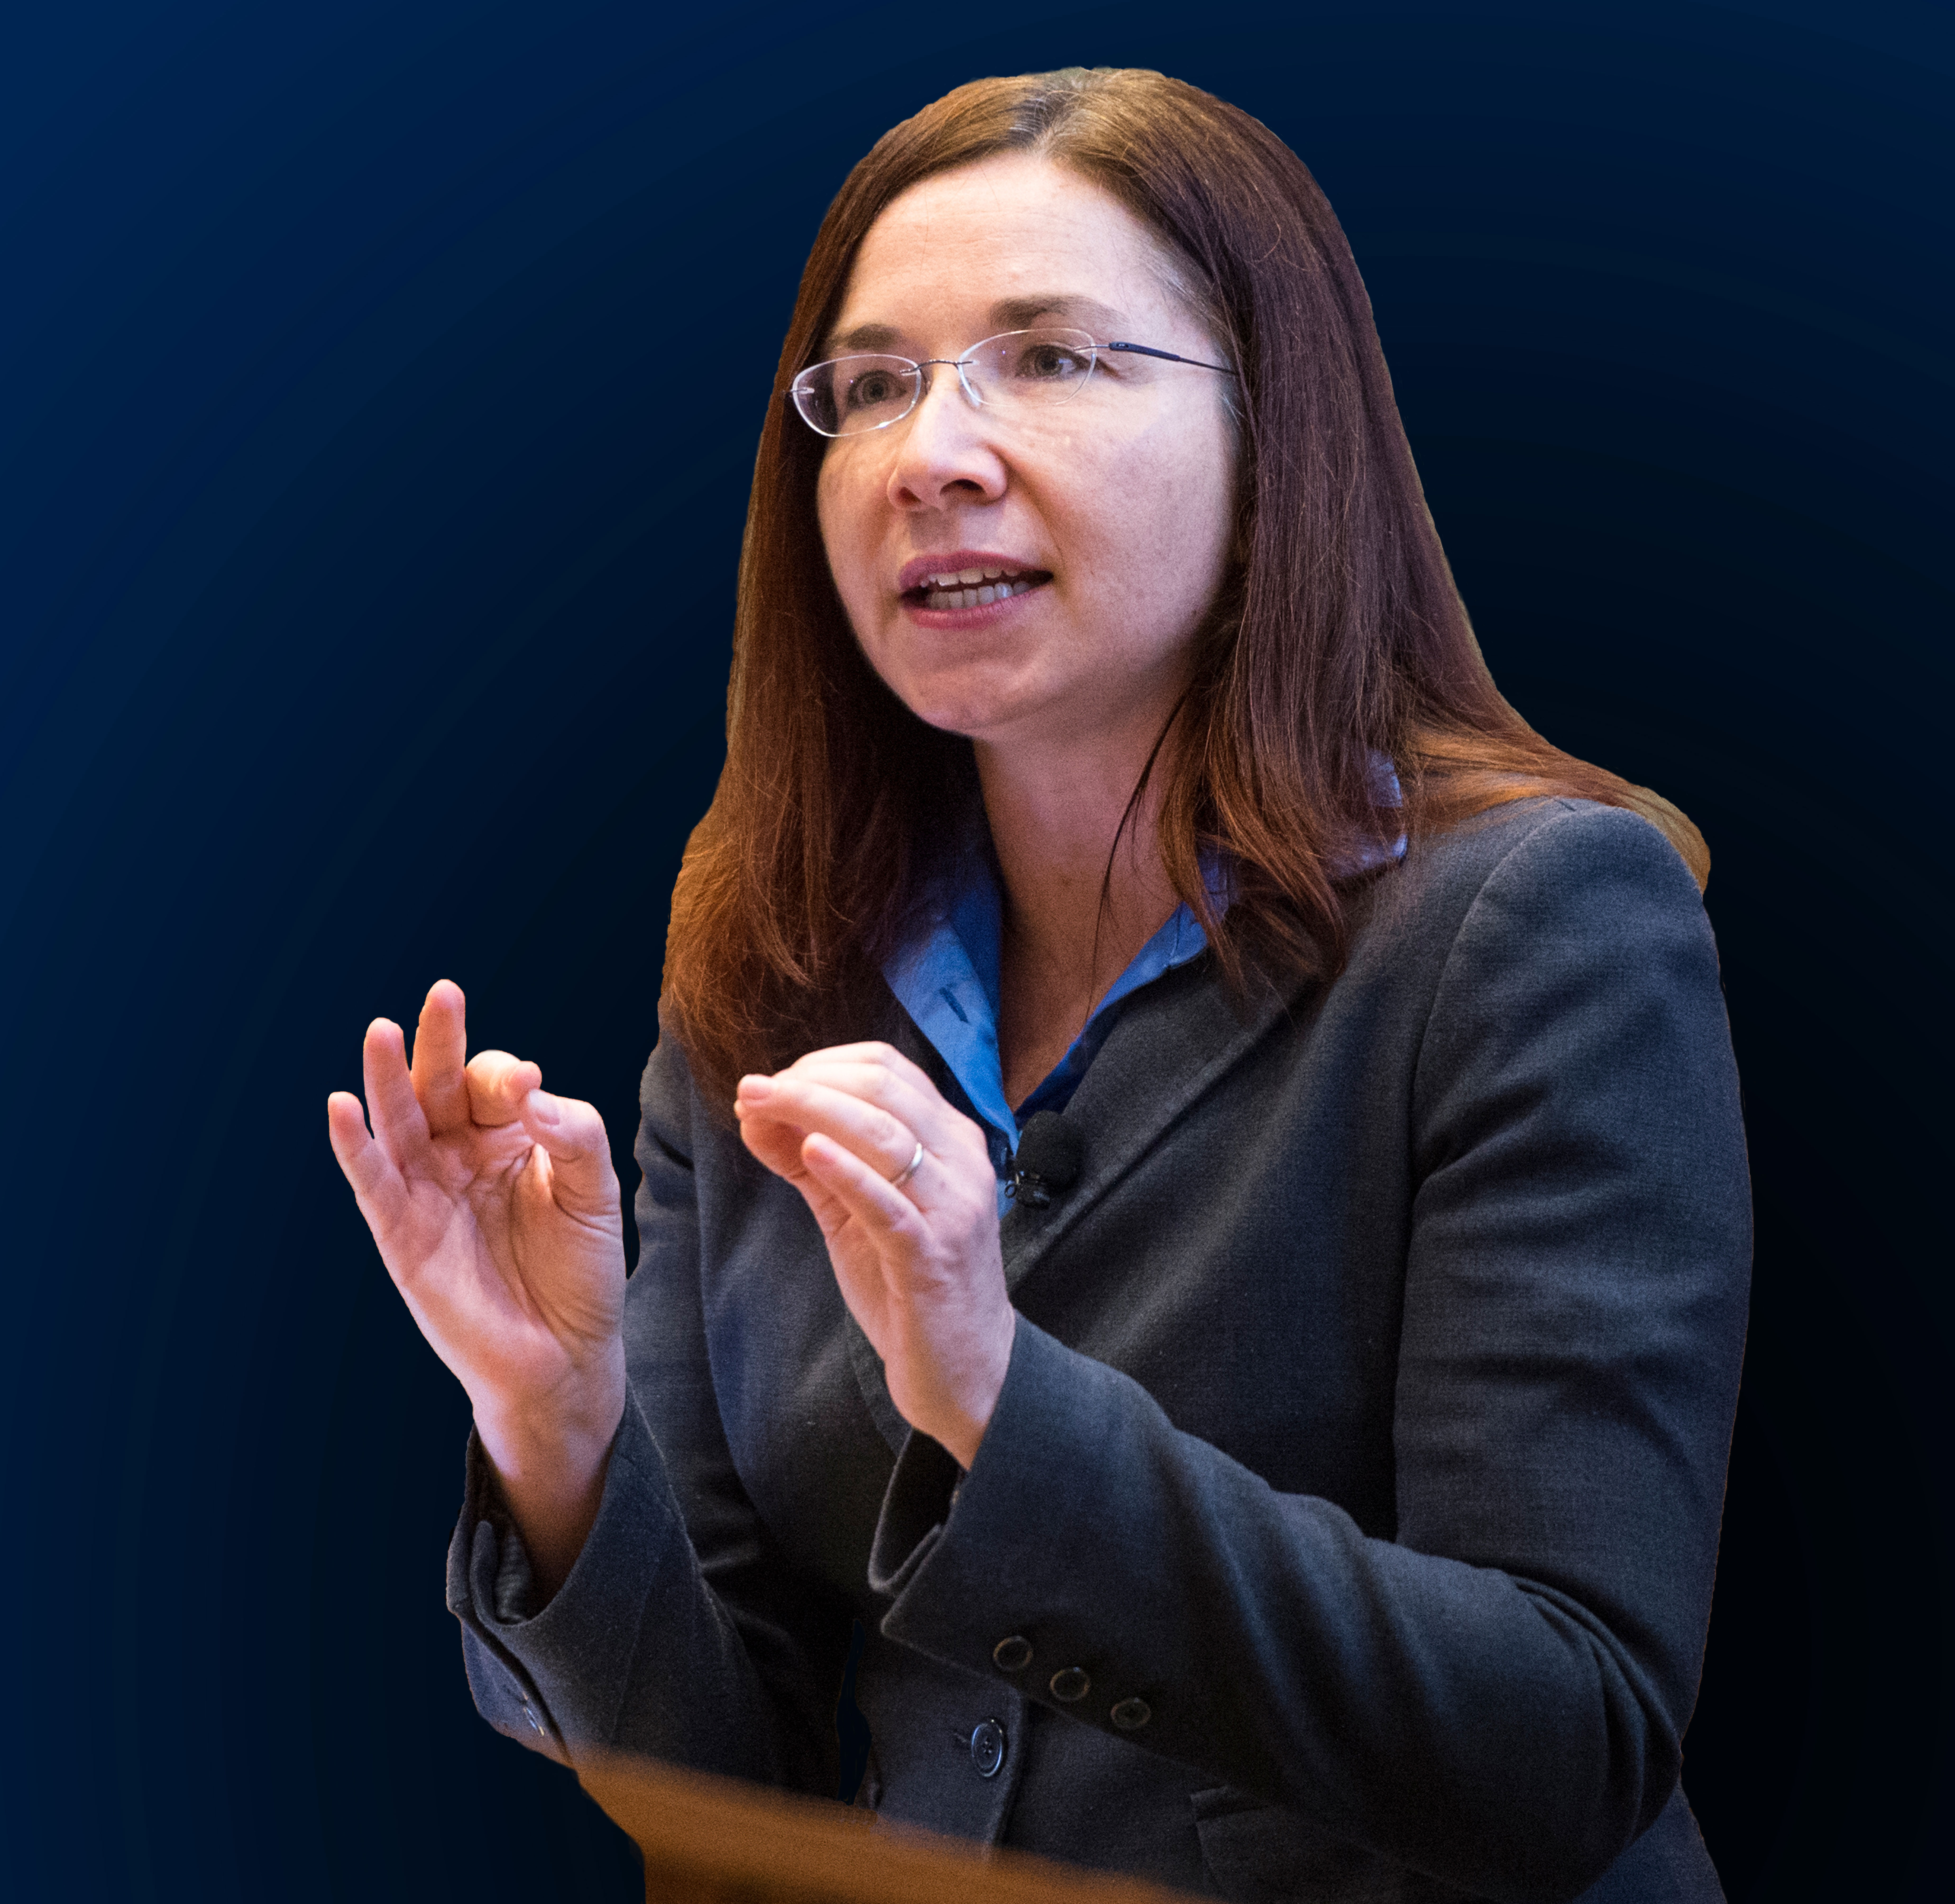 Caption: Katharine Hayhoe, recipient of the 2018 Stephen H. Schneider Award for Outstanding Science Communication